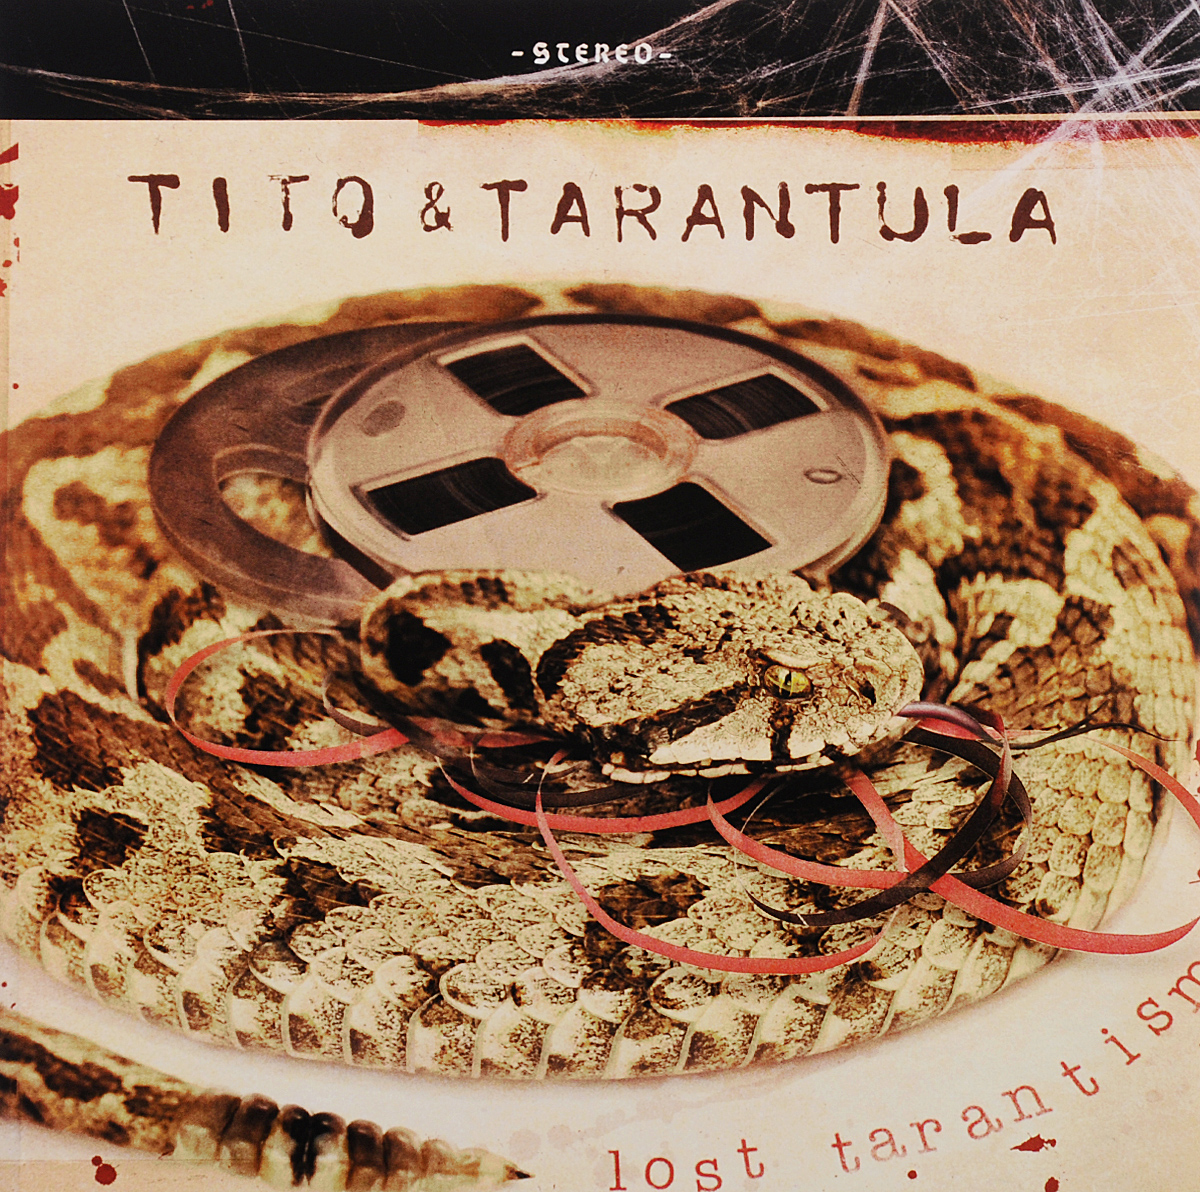 Tito & Tarantula Tito & Tarantula. Lost Tarantism (LP) + CD partners lp cd